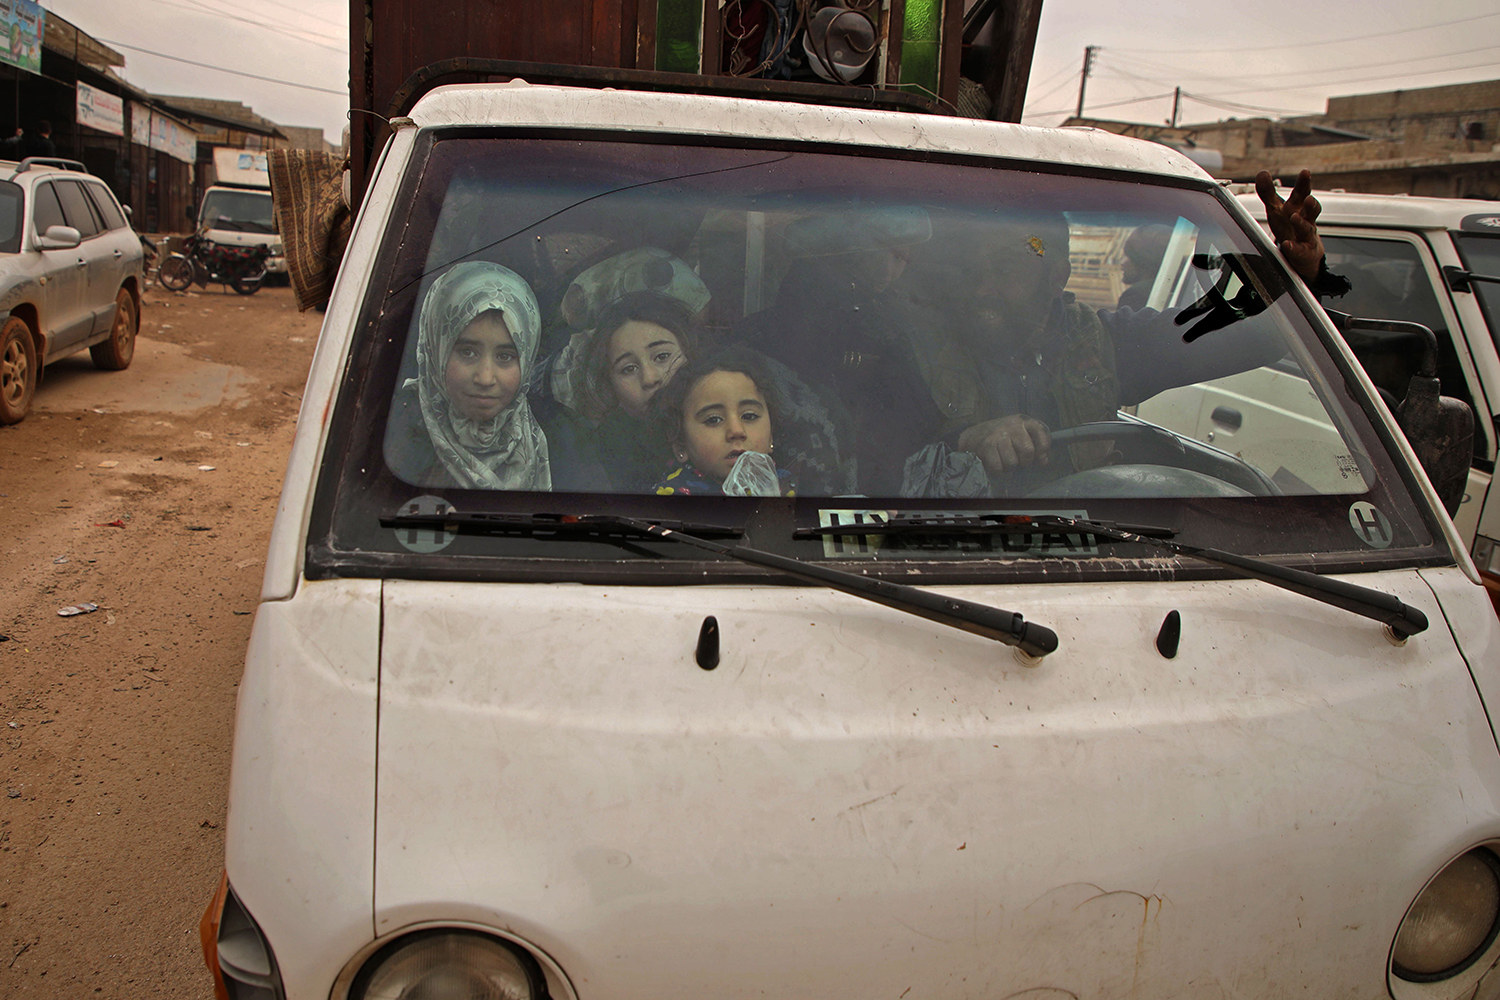 Displaced Syrians in a truck transporting their belongings pass through the town of Hazano in the northern countryside of Idlib, on Feb. 4, fleeing north amid an ongoing regime offensive. AAREF WATAD/AFP via Getty Images